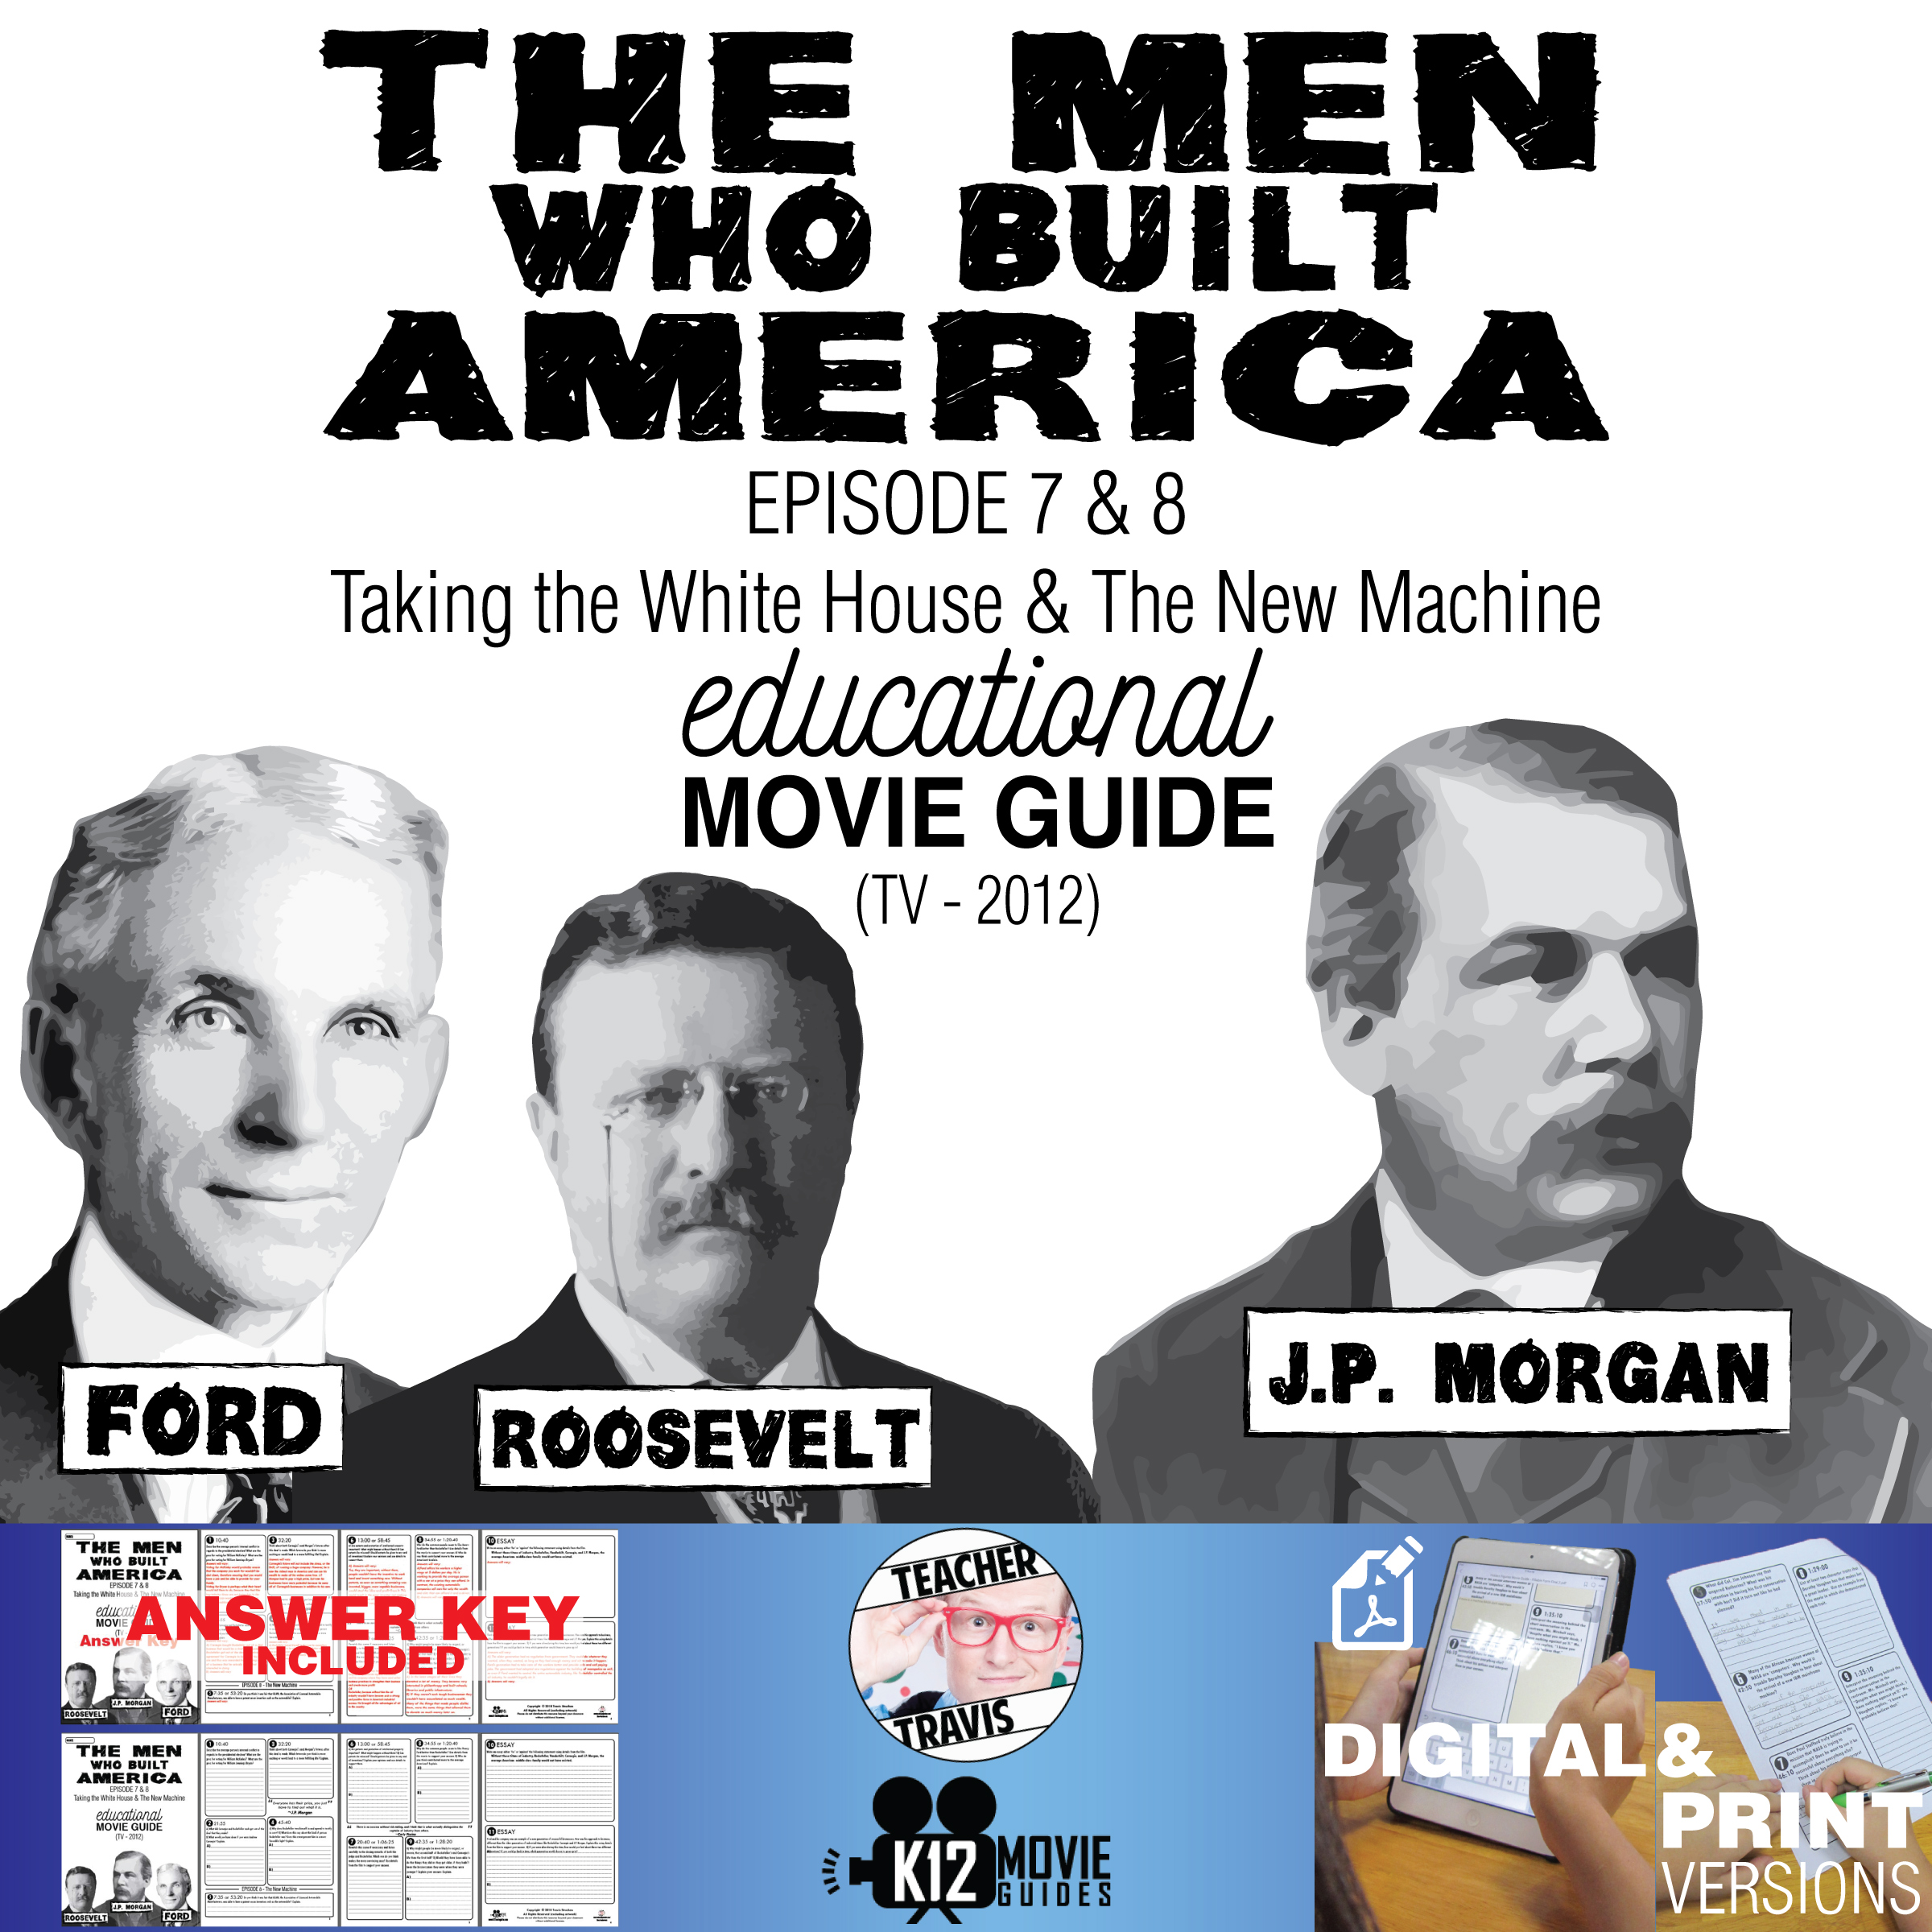 The Men Who Built America - Ep 7 & 8 Movie Guide | Worksheet (TV - 2012) Cover